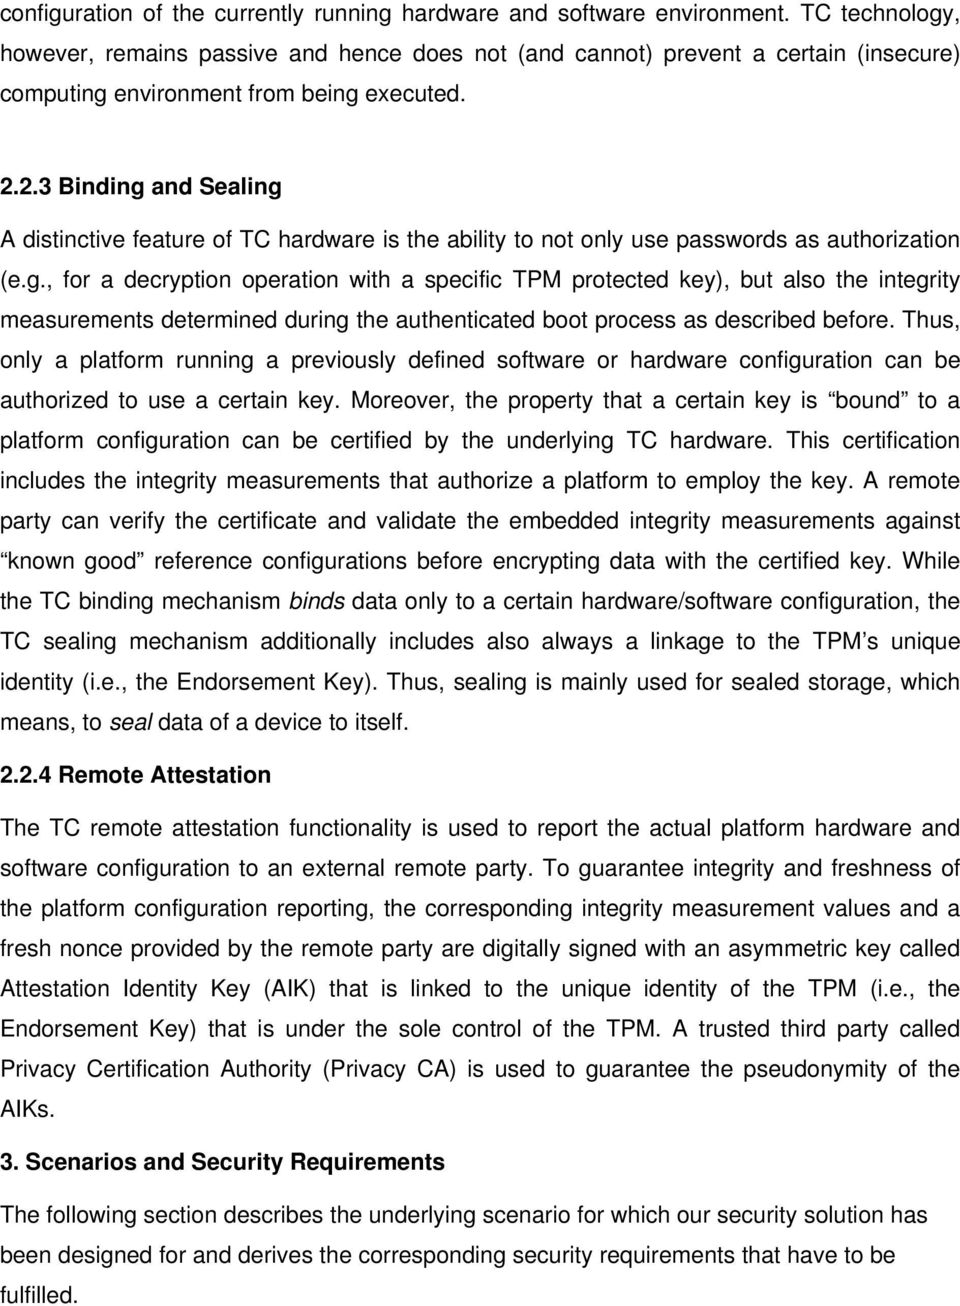 2.3 Binding and Sealing A distinctive feature of TC hardware is the ability to not only use passwords as authorization (e.g., for a decryption operation with a specific TPM protected key), but also the integrity measurements determined during the authenticated boot process as described before.